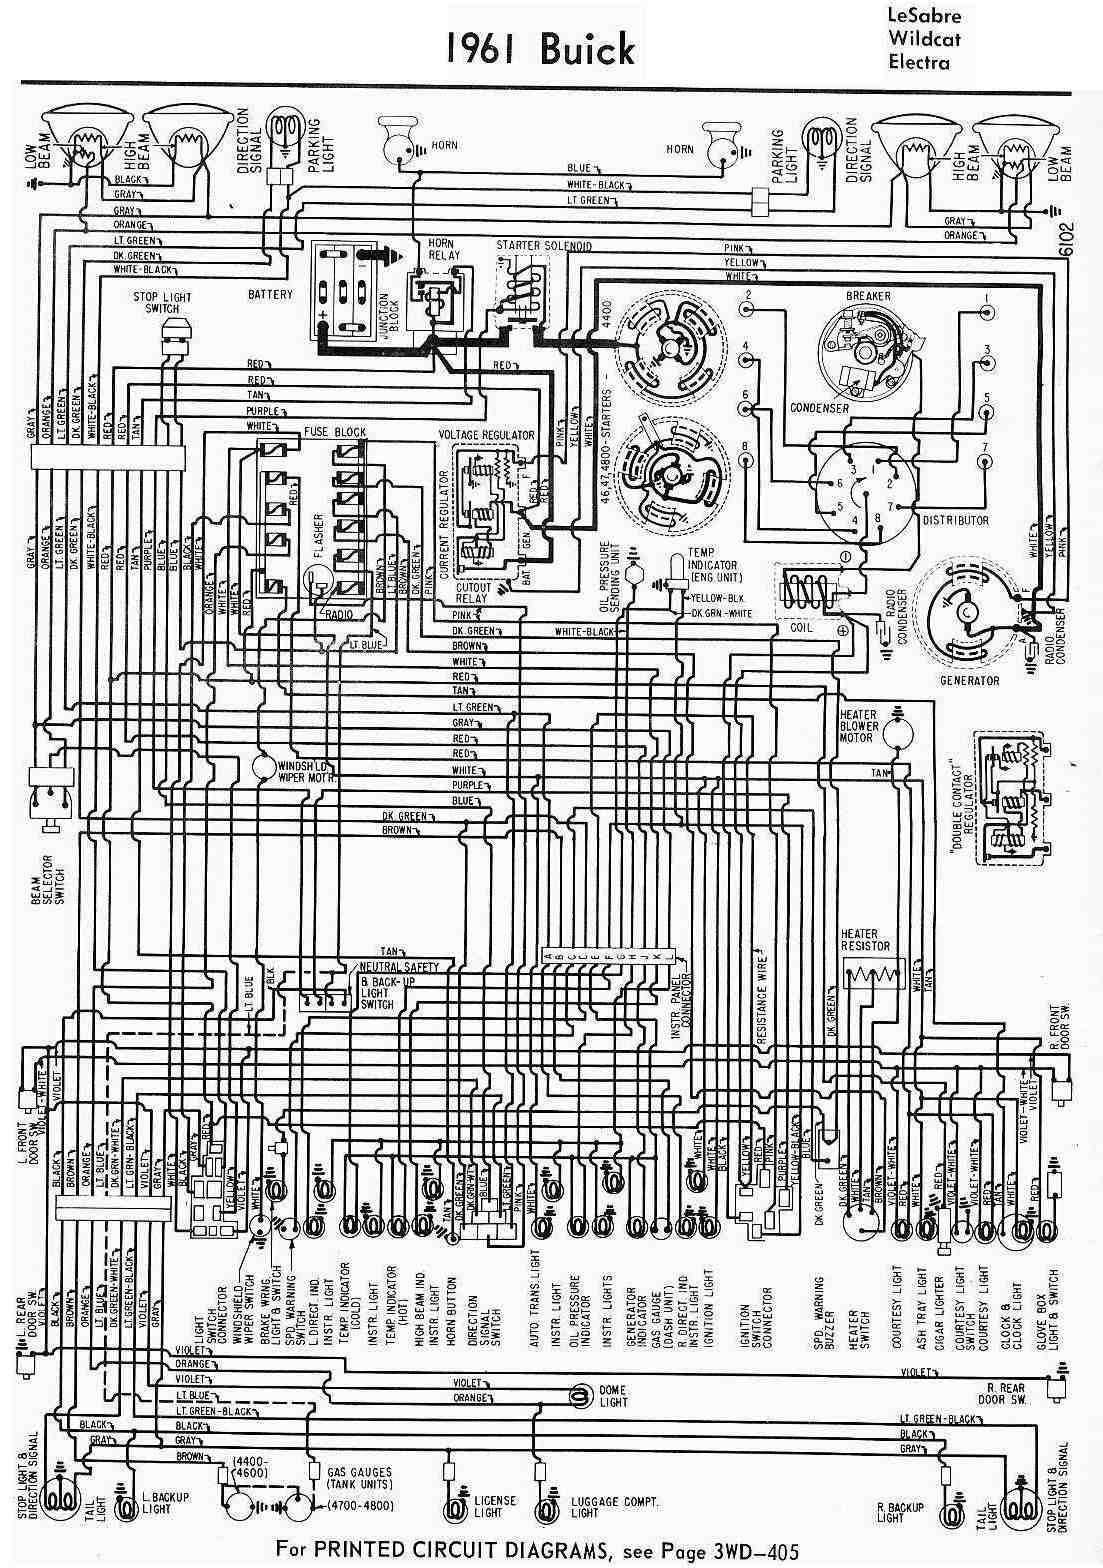 december 2011 all about wiring diagrams 2000 chevy truck wiring harness